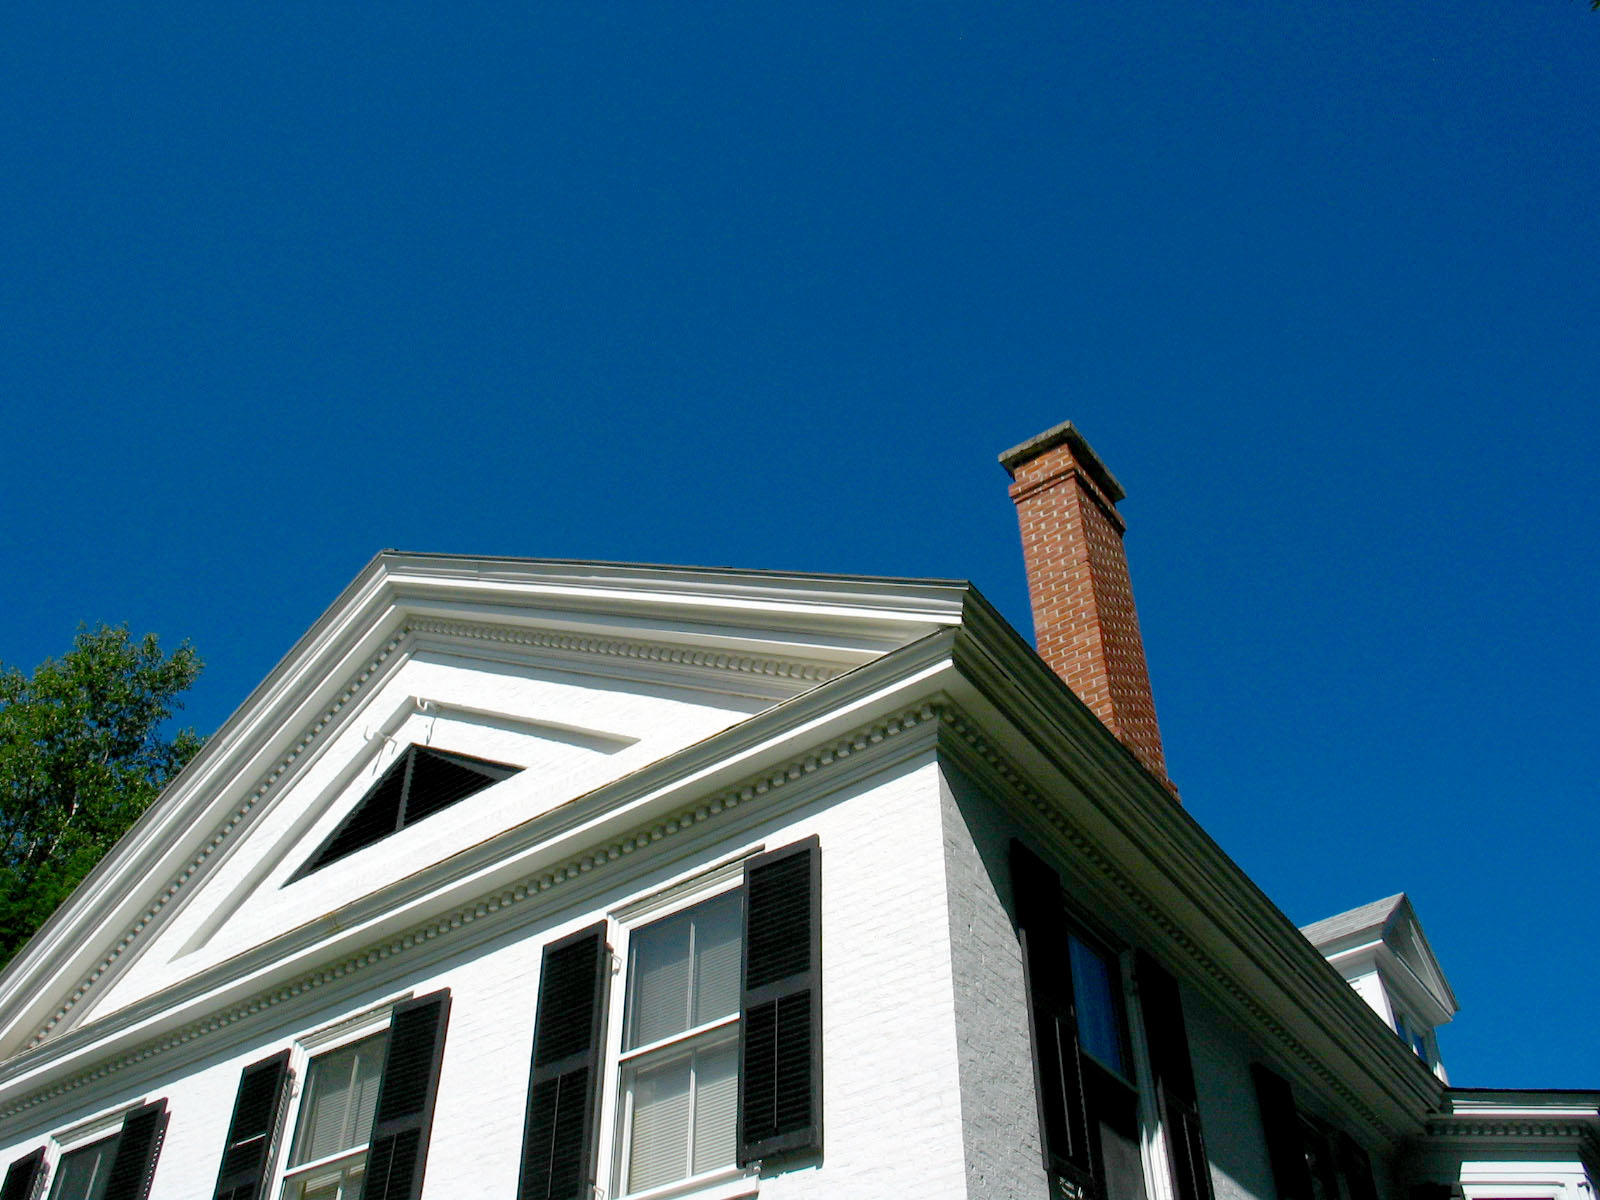 Without proper care and cleaning, your chimney can become a major fire hazard.